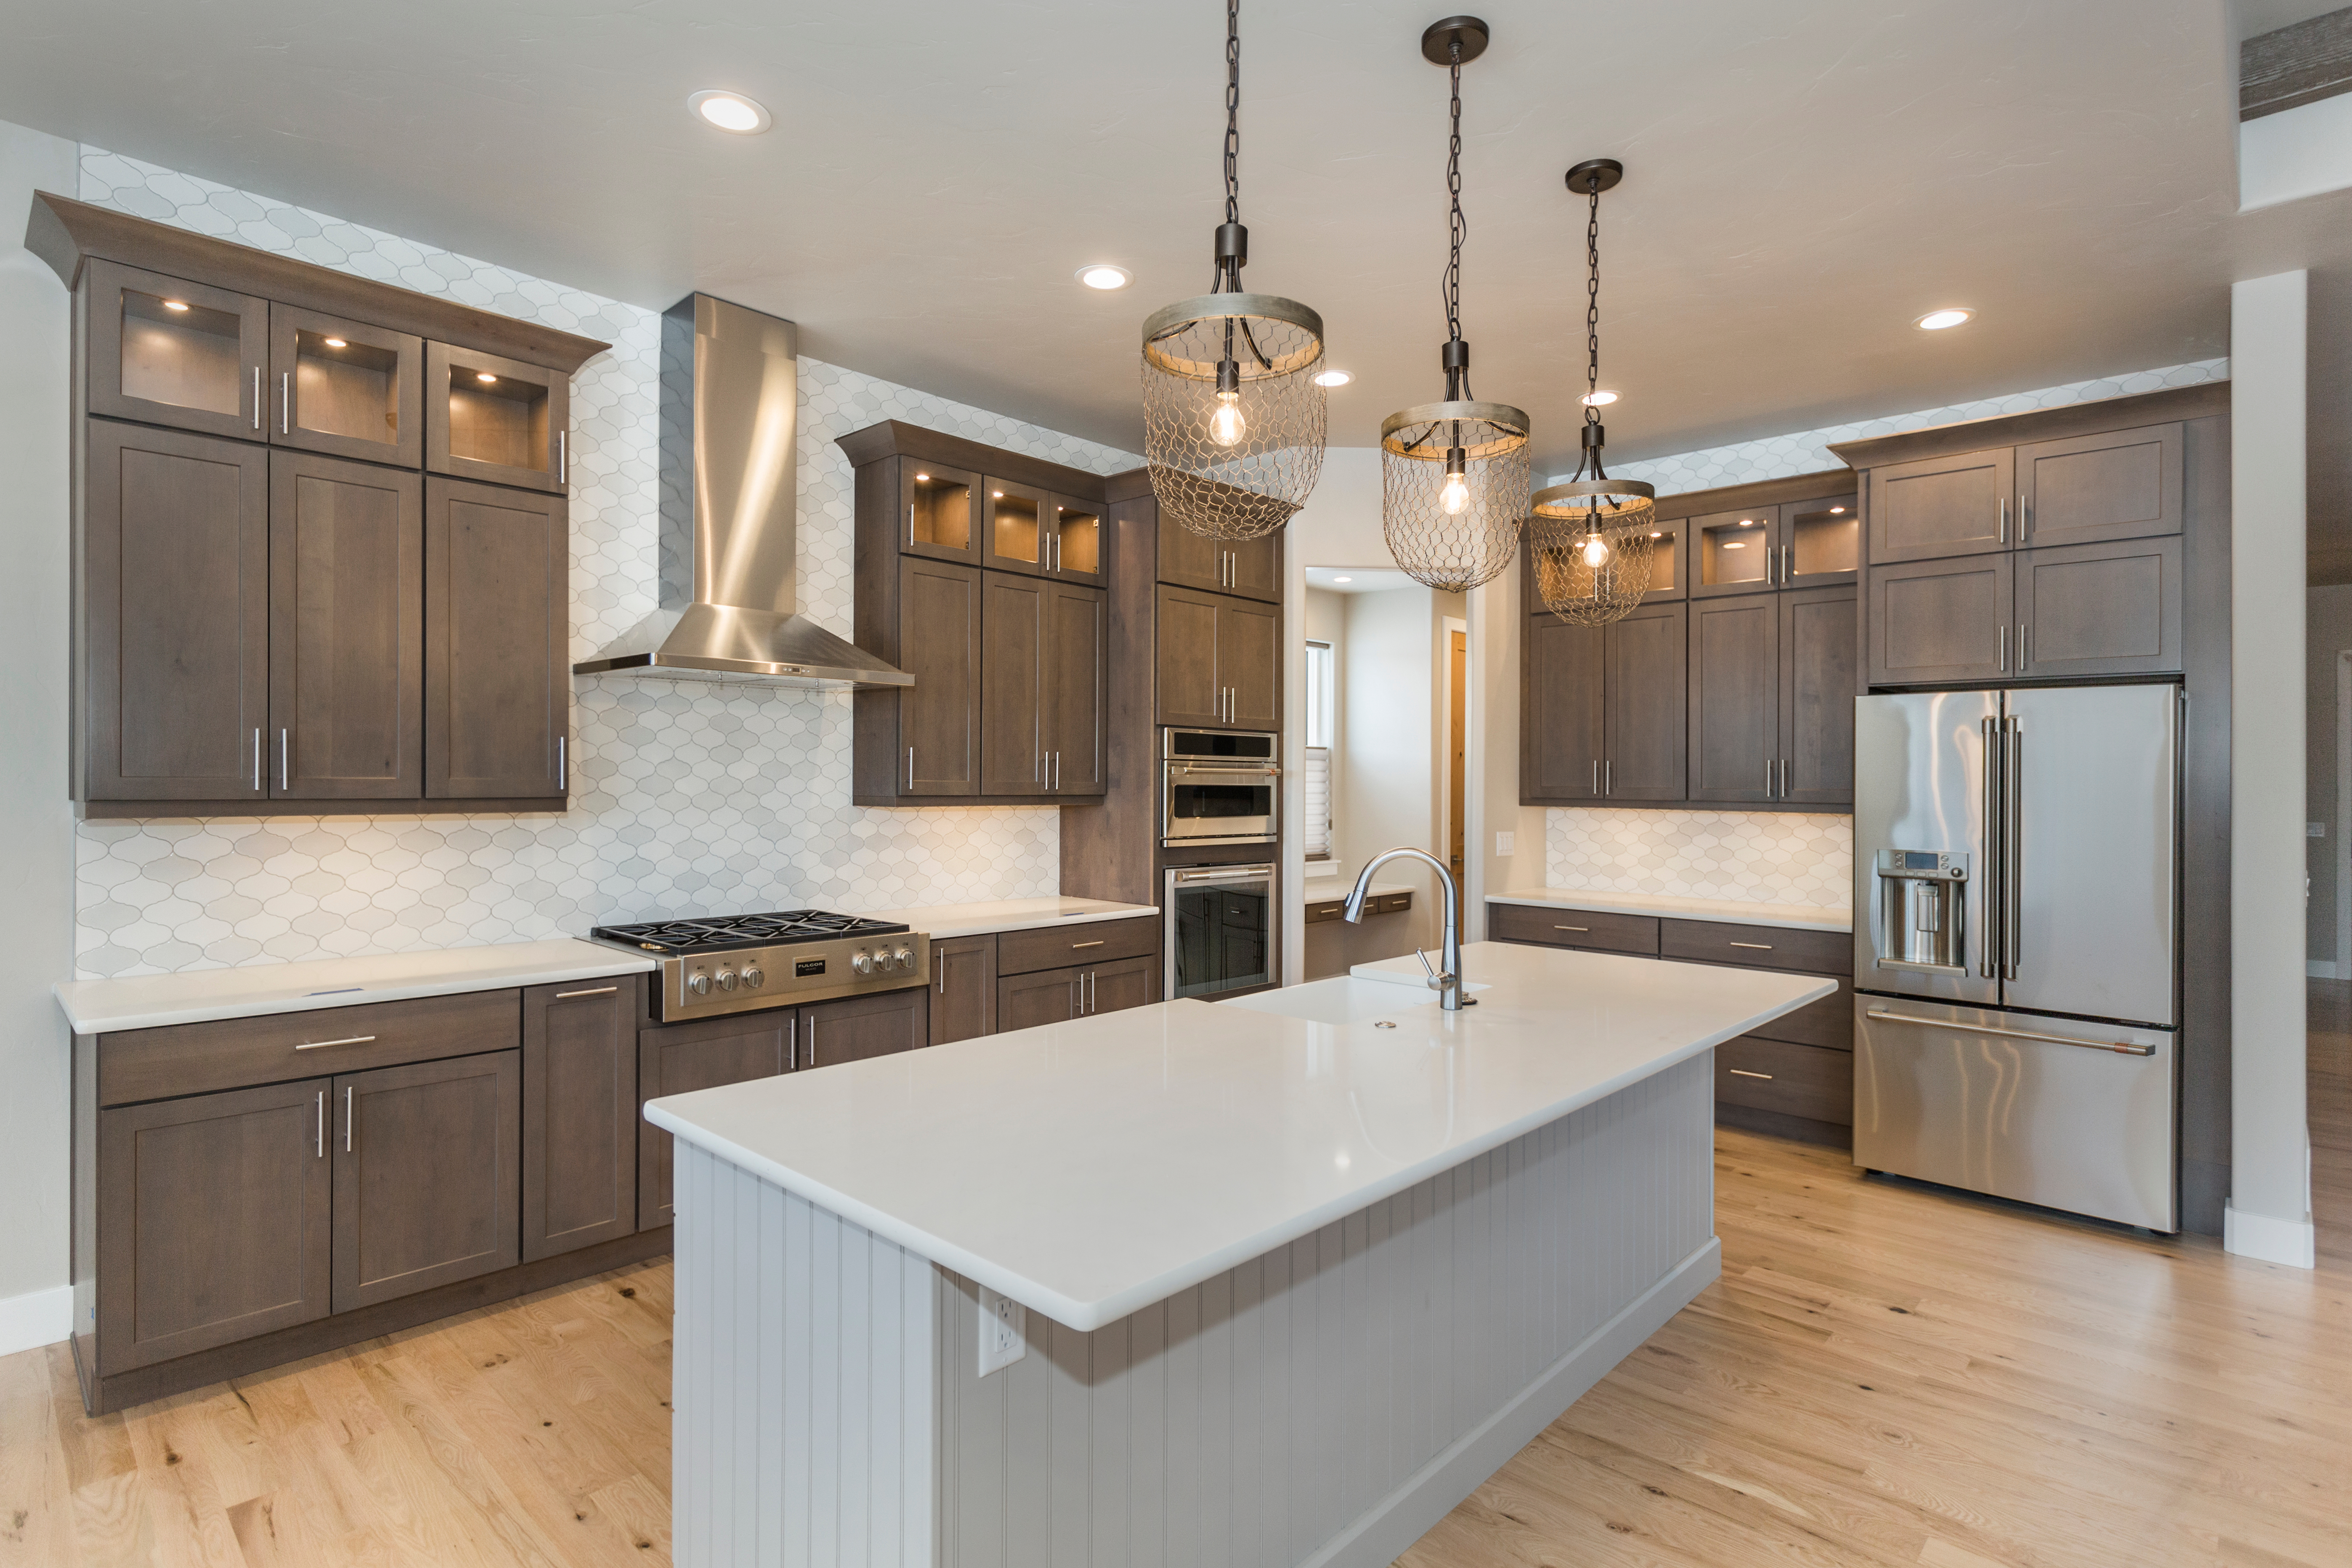 Luxury kitchen with island in center and taupe cabinets